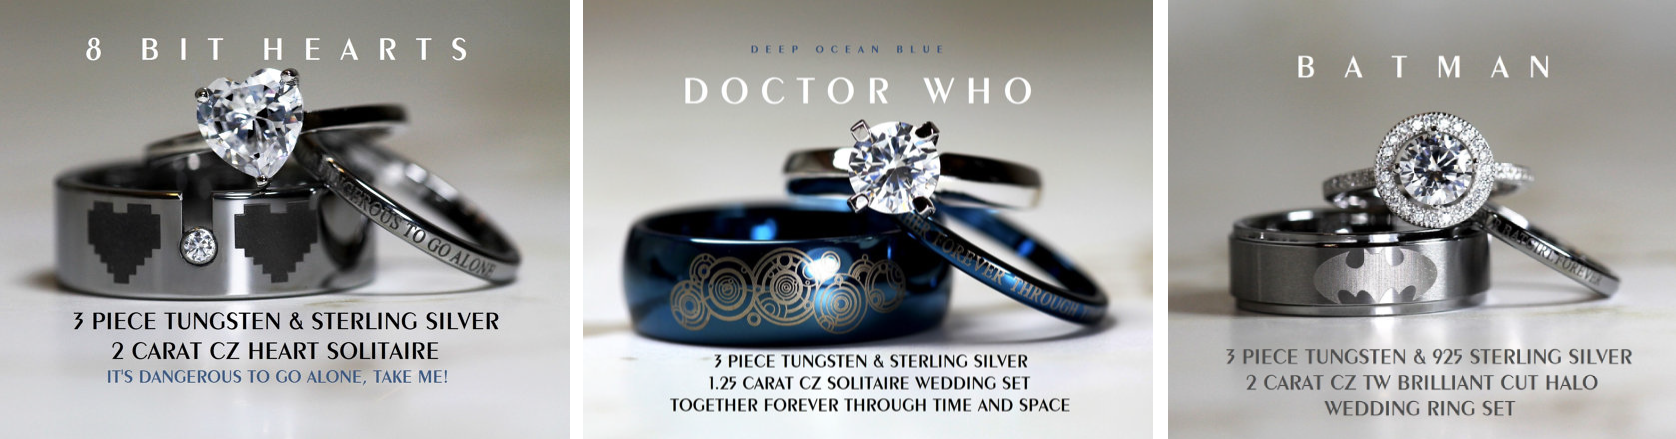 Superhero wedding rings